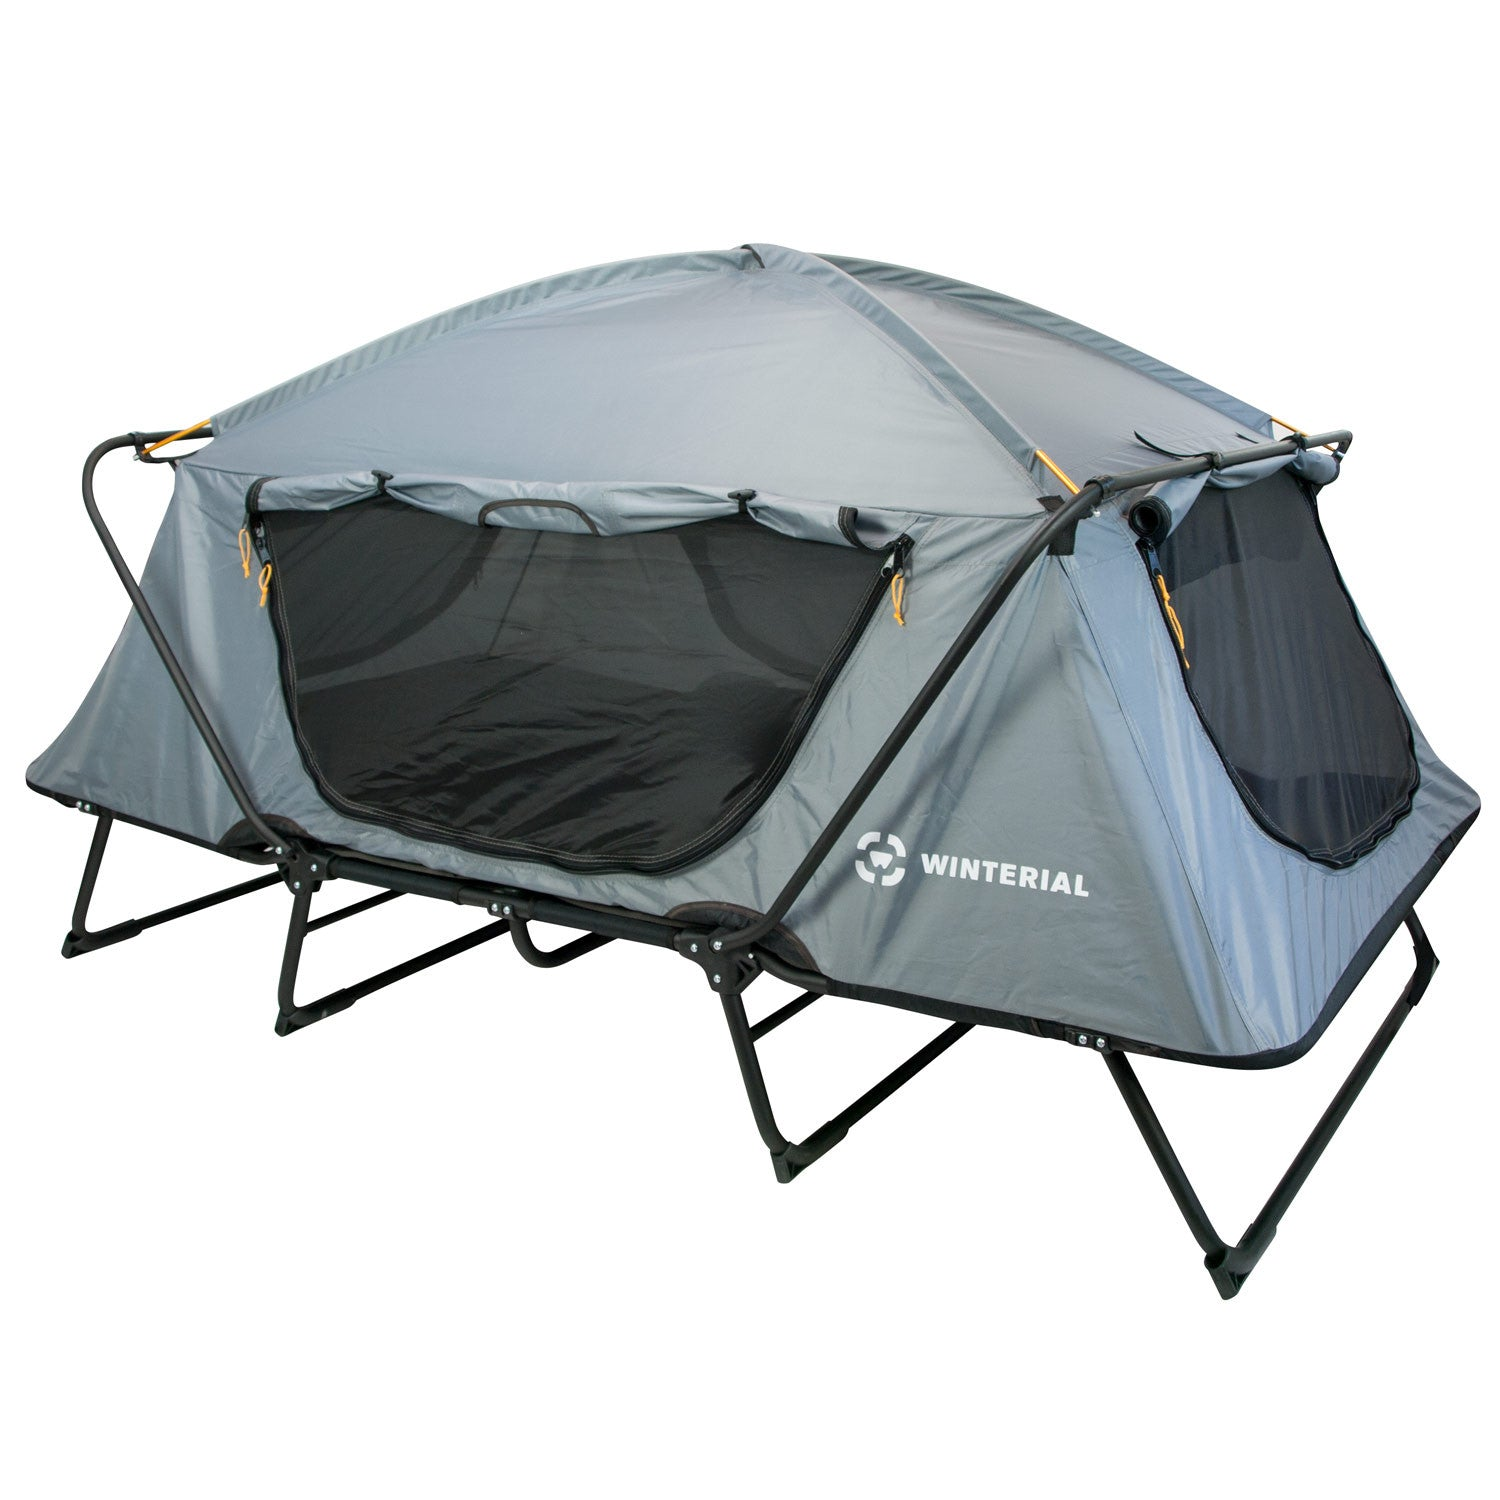 ... 2 person oversize tent cot in grey with mesh doors ...  sc 1 st  Winterial.com : oversize tent cot - memphite.com